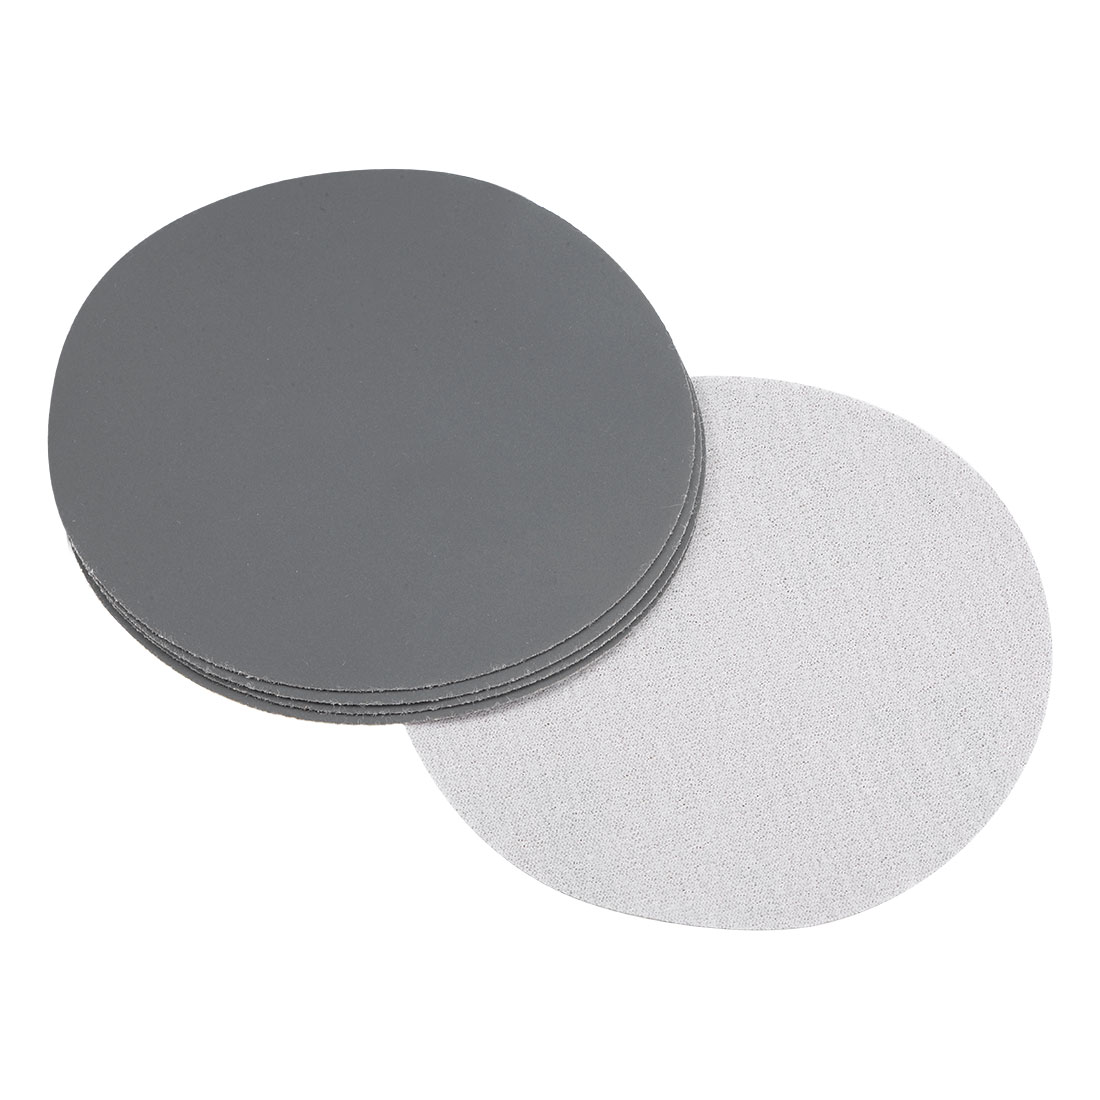 5 inch Wet Dry Discs 2500 Grit Hook and Loop Sanding Disc Silicon Carbide 5pcs